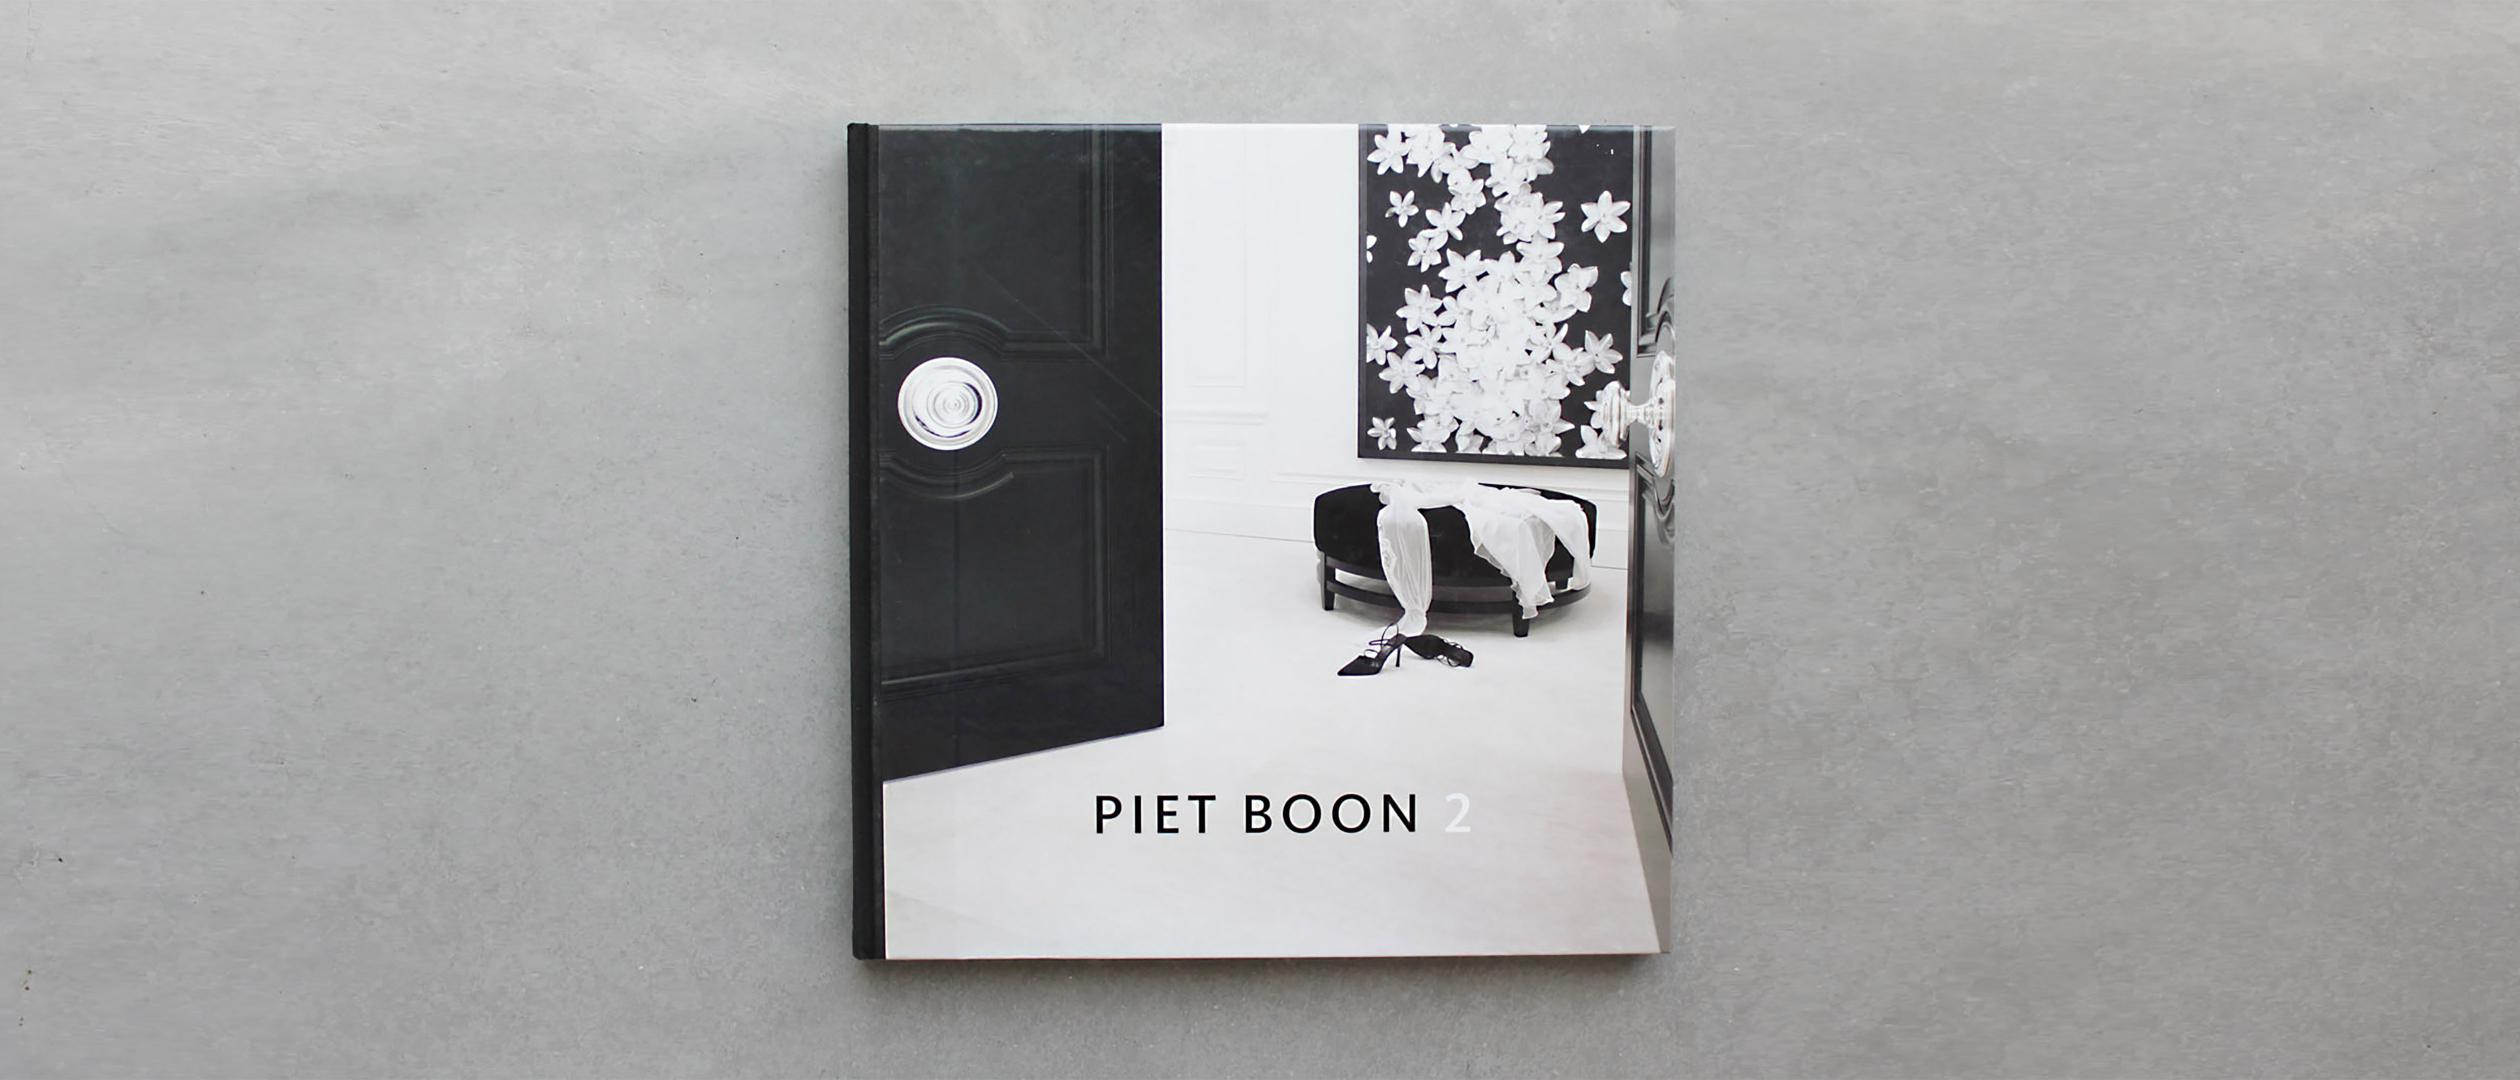 Book Piet Boon 2